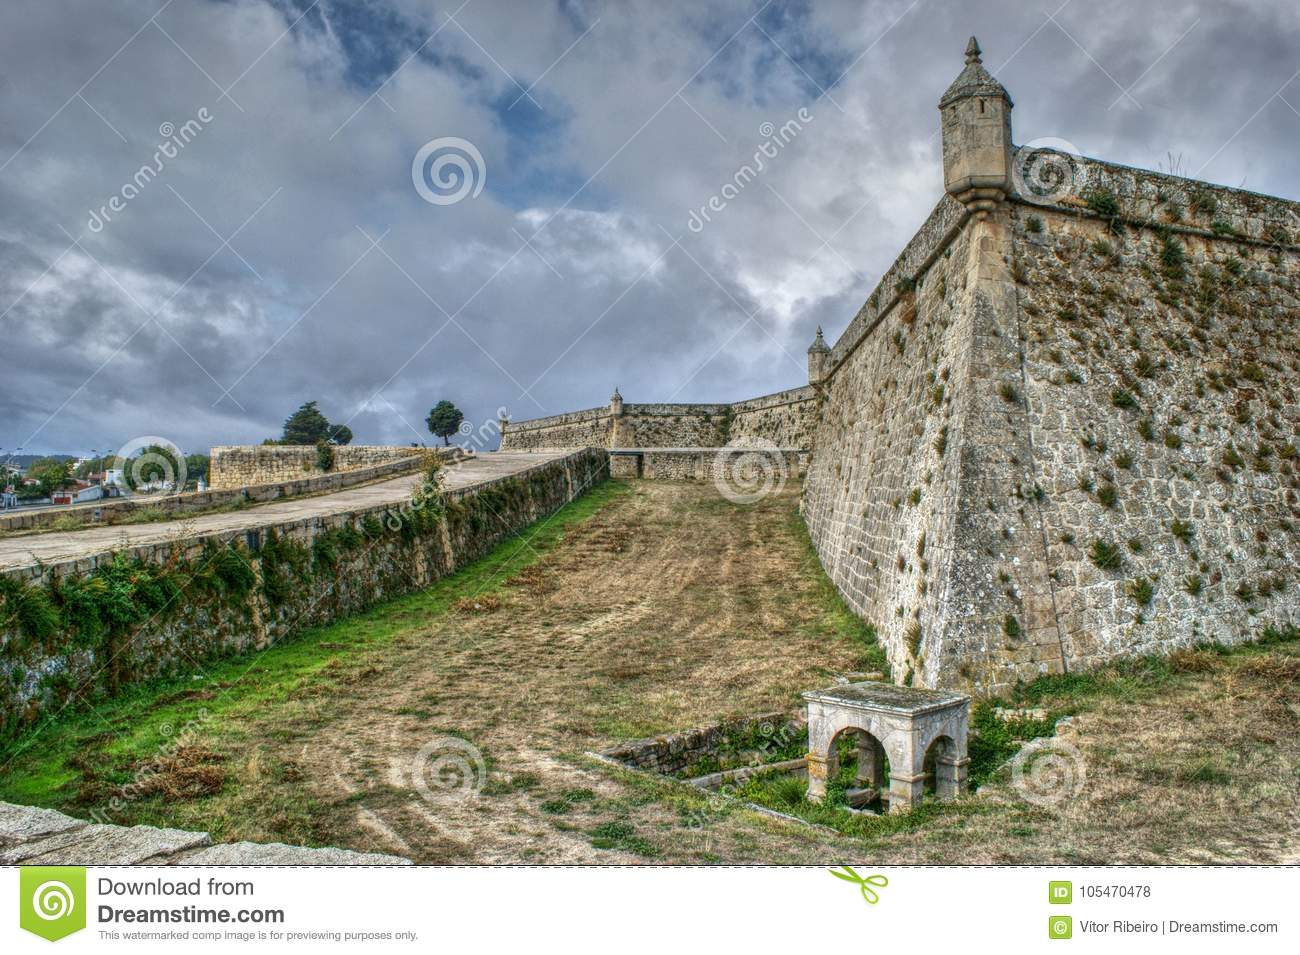 Download Sao Neutel Fortress In Chaves Stock Photo - Image of modern, exterior: 105470478